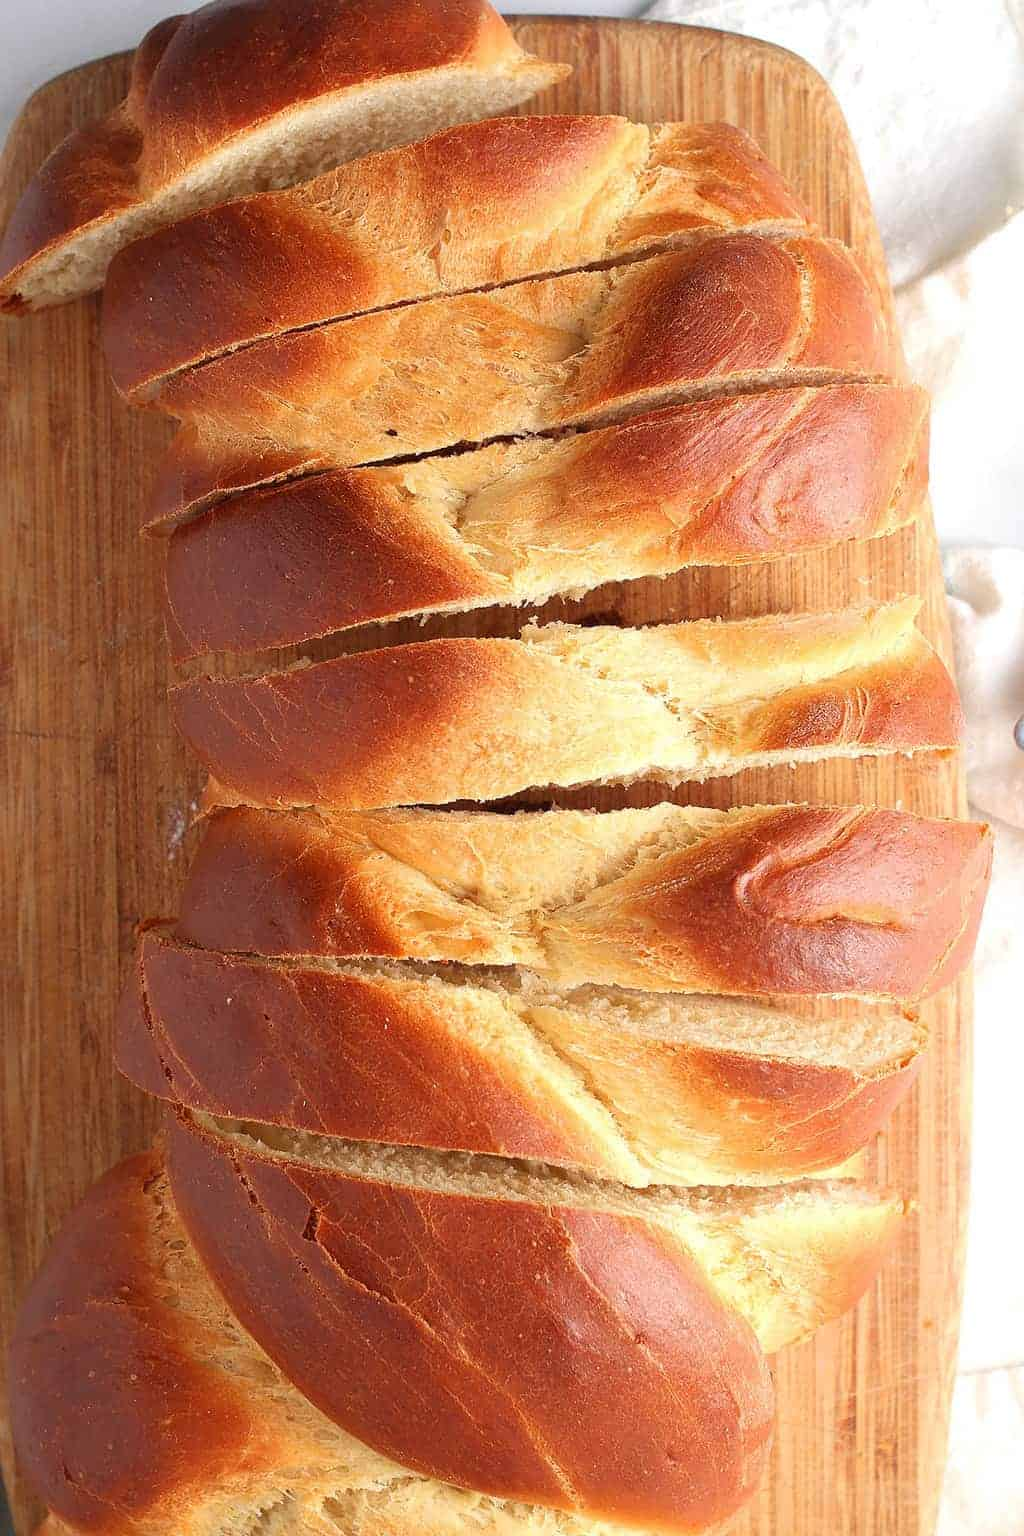 Slices of challah bread on cutting board